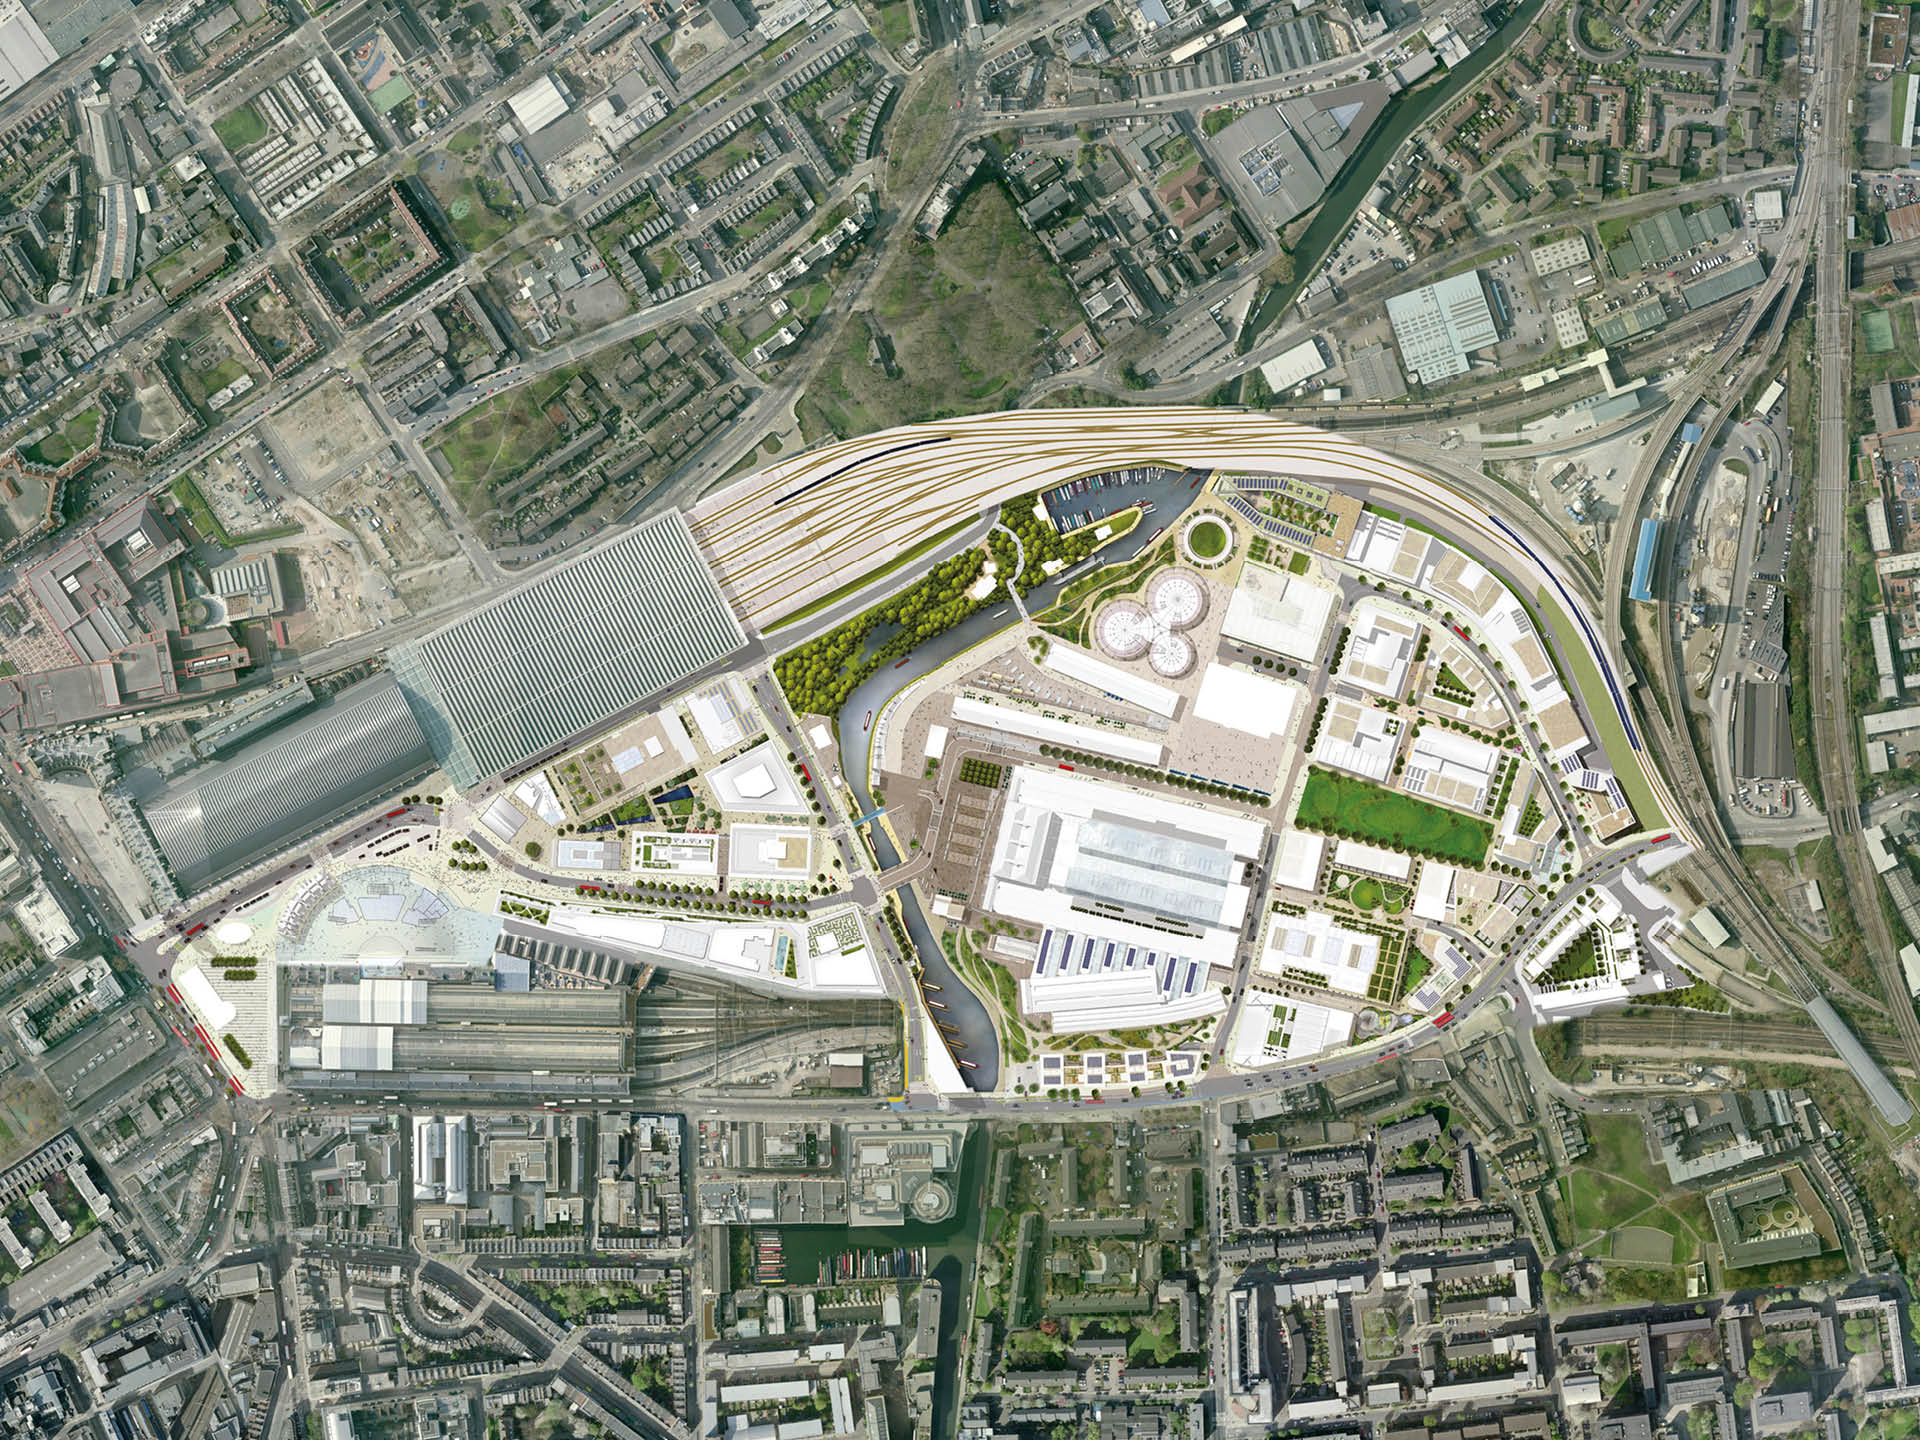 King's Cross Central Masterplan